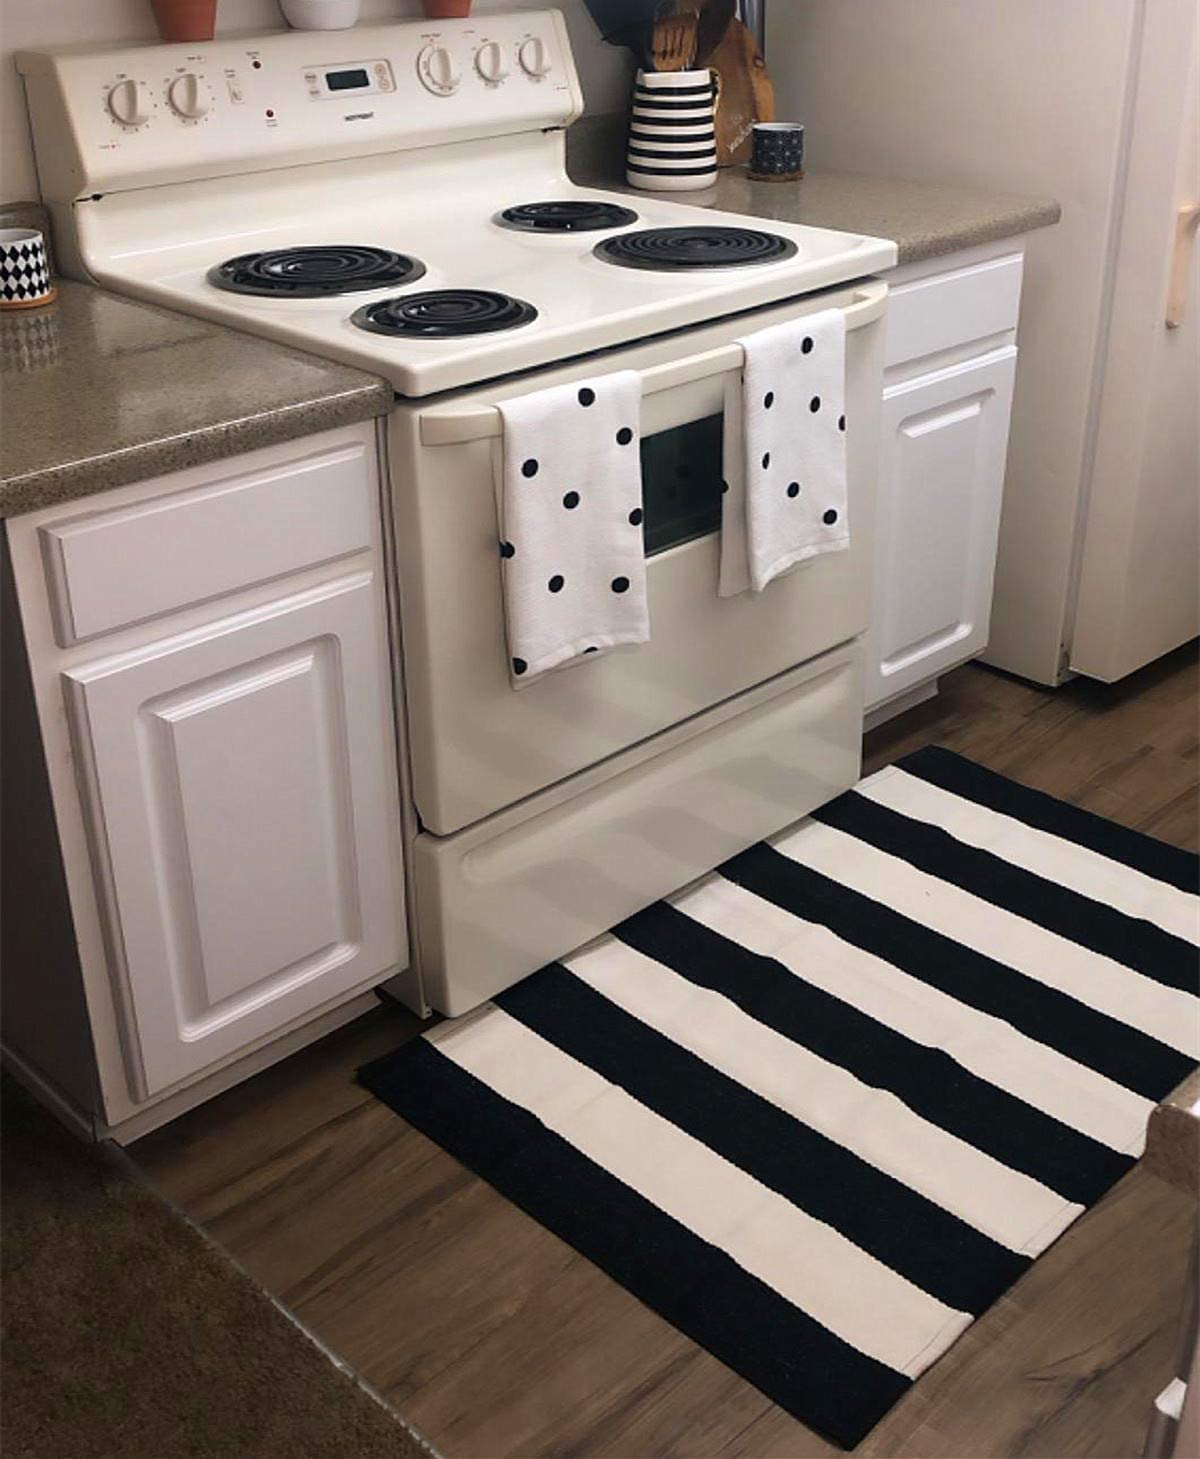 Ukeler Washable Black and White Striped Porch Rug/Door Mat 27.5 x 43.3 Inches Perfect Size for Layered Door Mats, Customized Size for Hello Welcome Doormat, Super Popular Farmhouse Décor